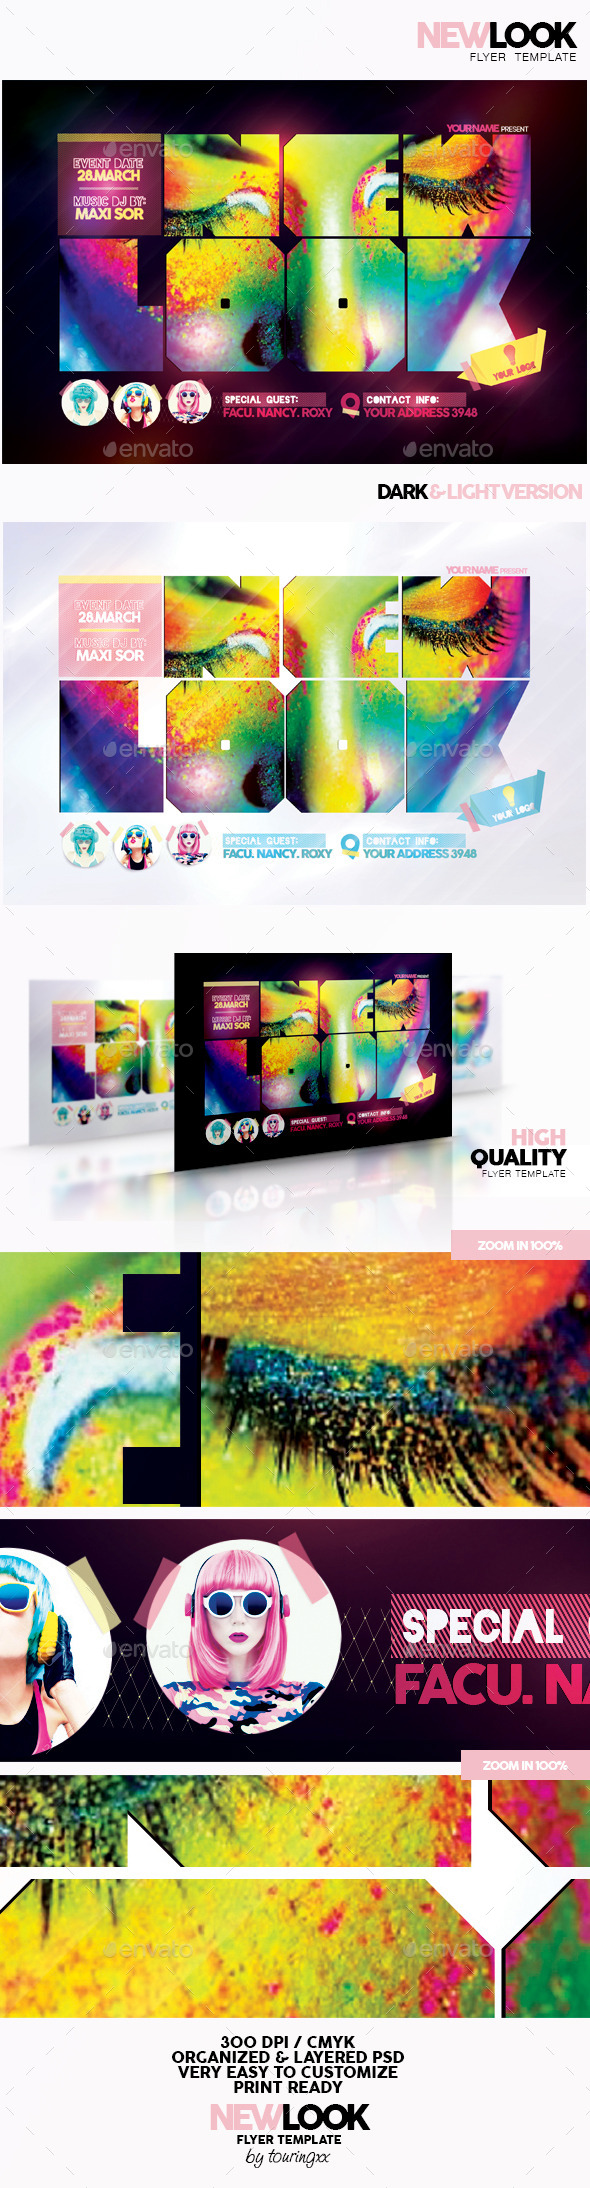 New Look Flyer Template - Clubs & Parties Events